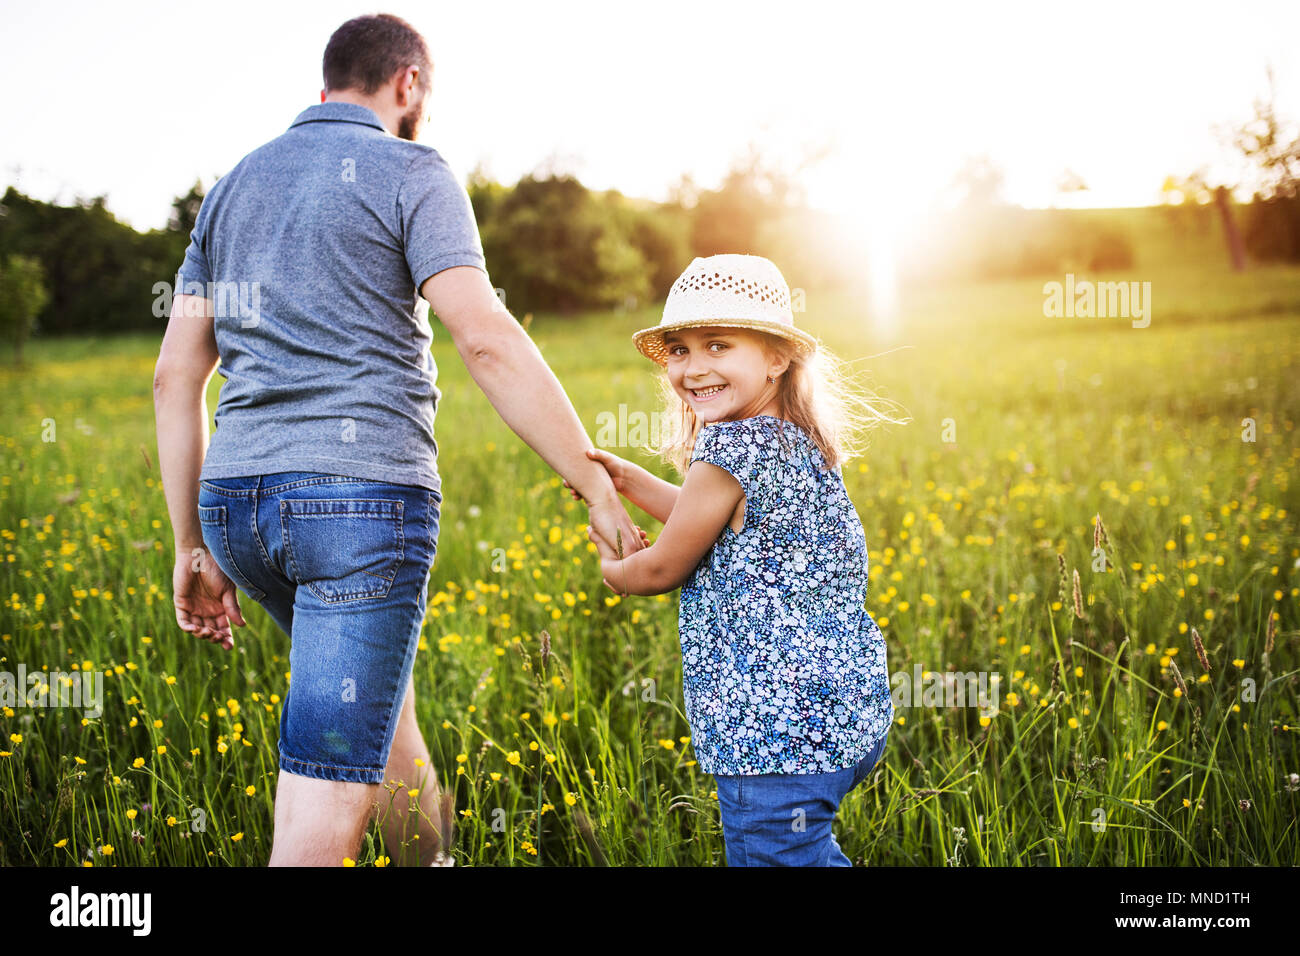 Father with a small daughter on a walk in spring nature. - Stock Image